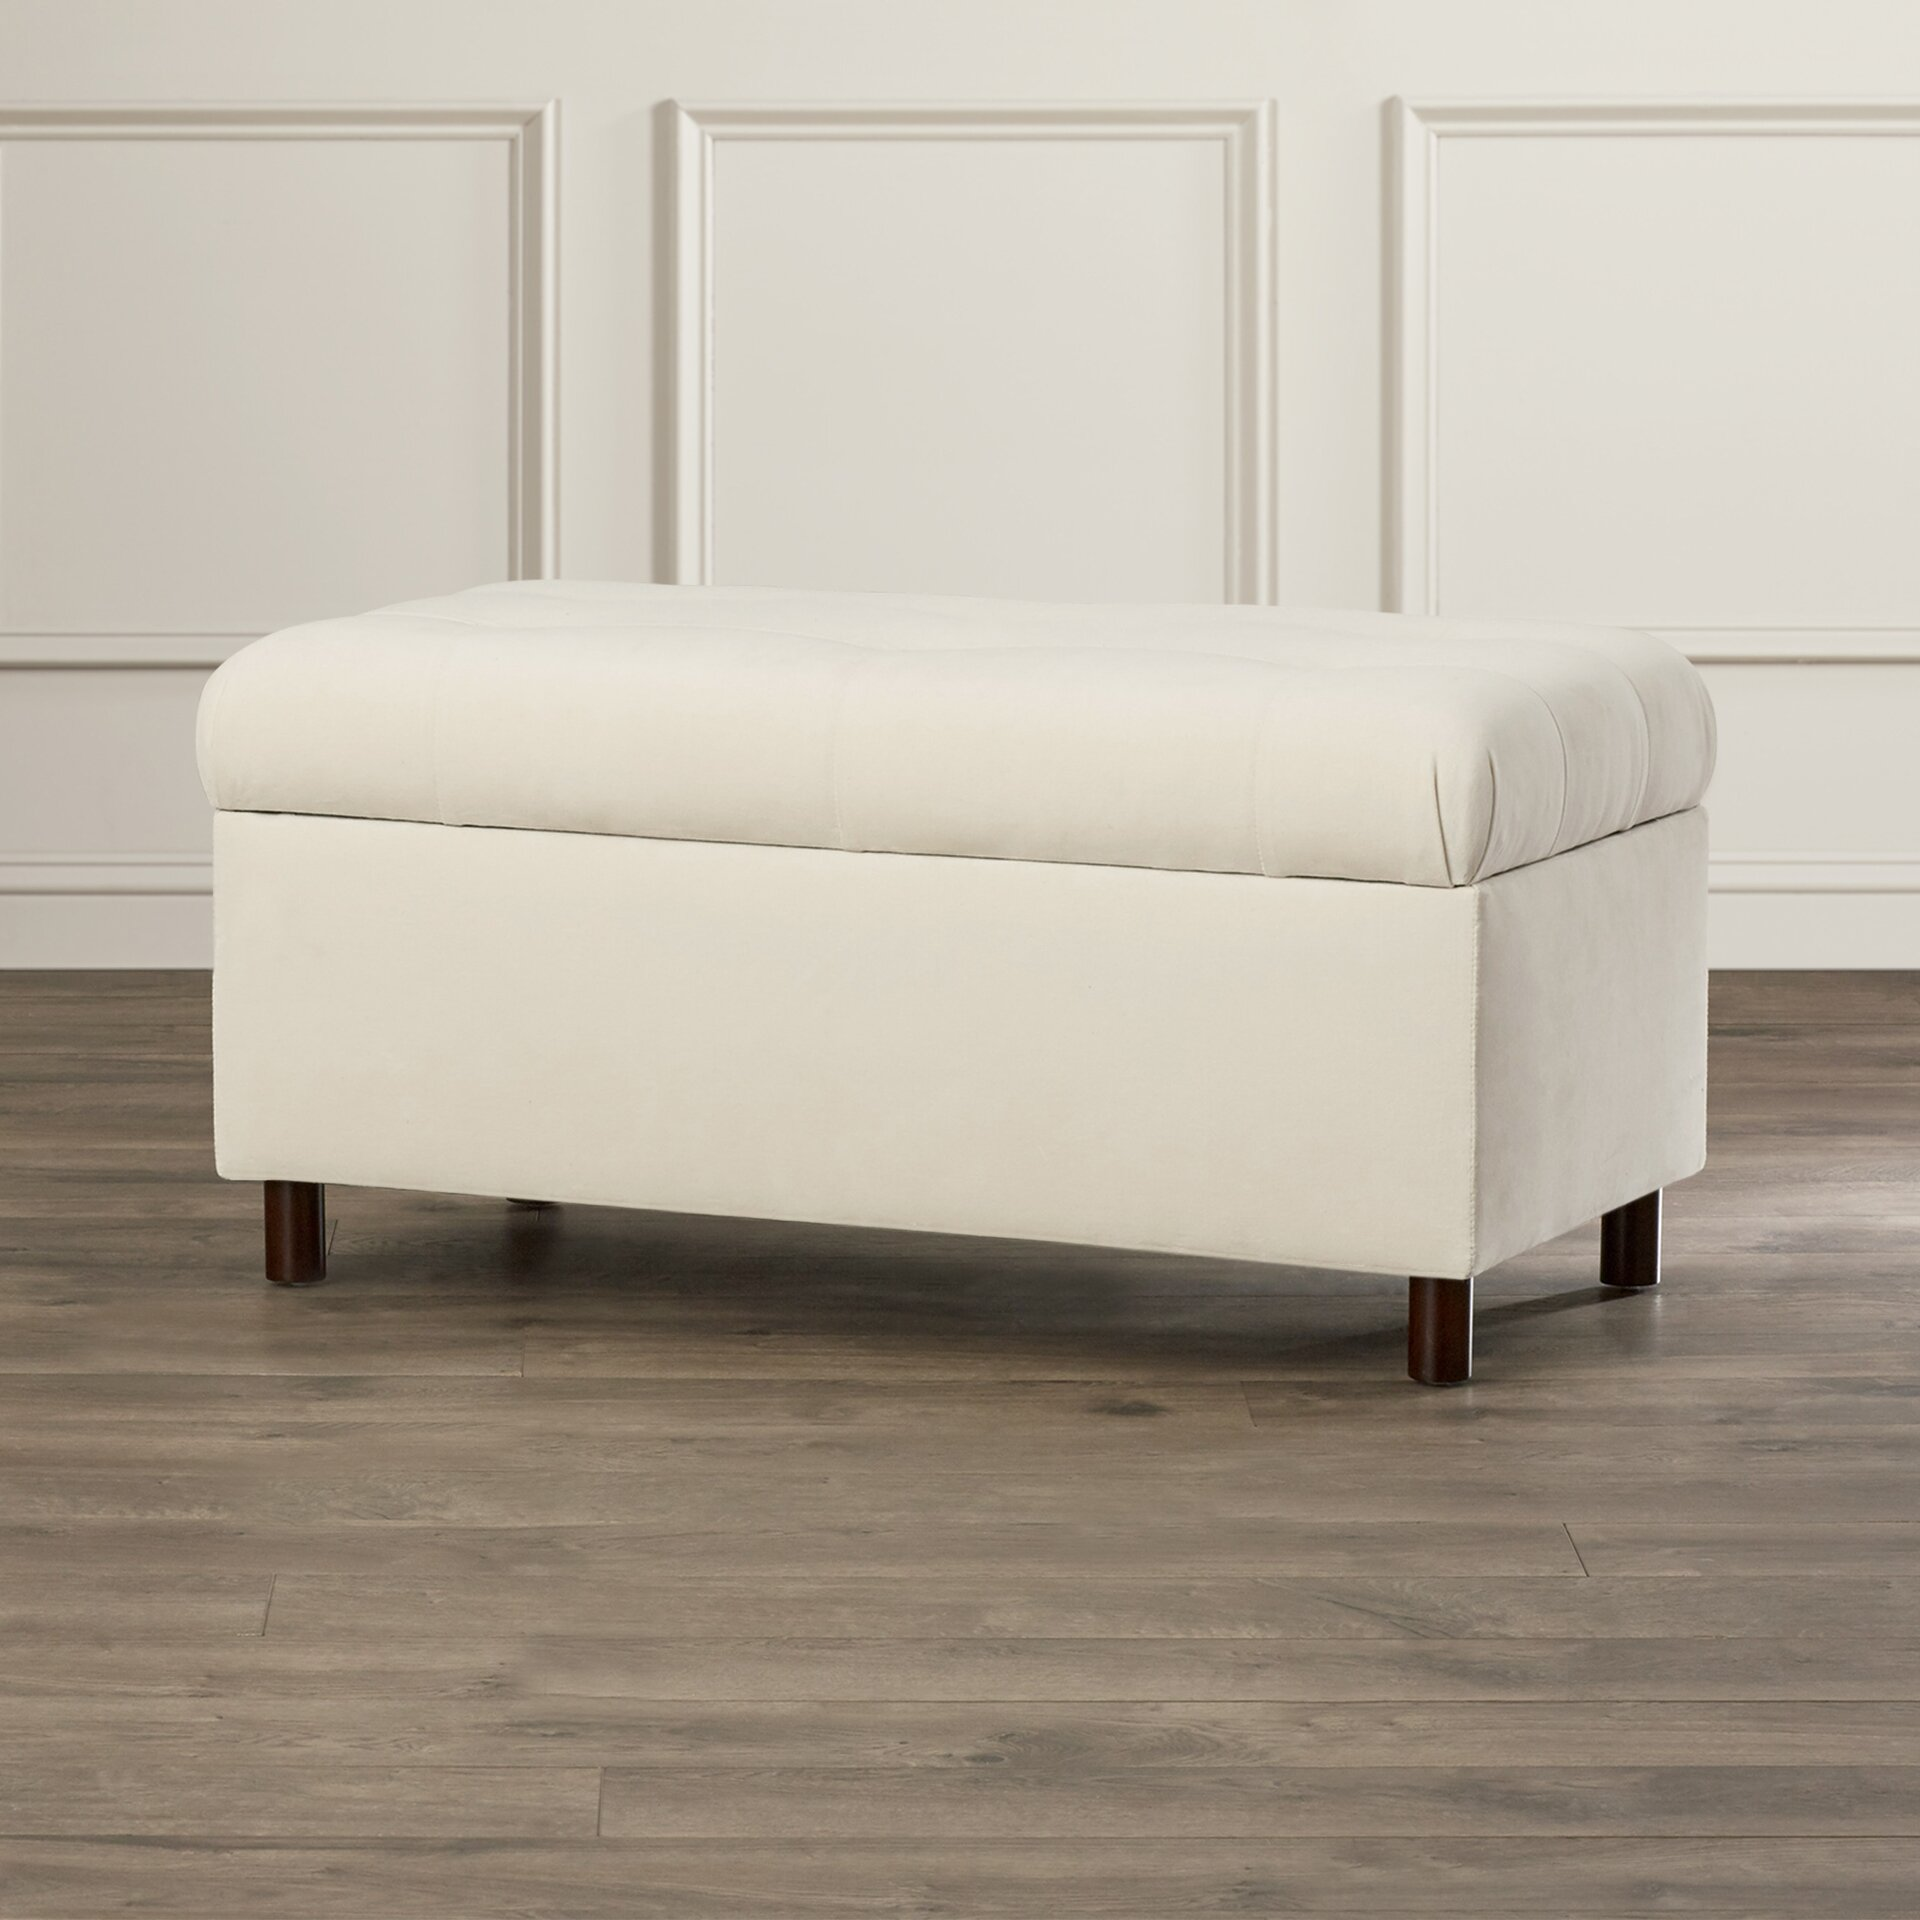 Varian Upholstered Storage Bedroom Bench Reviews: Alcott Hill Regal Upholstered Storage Bedroom Bench